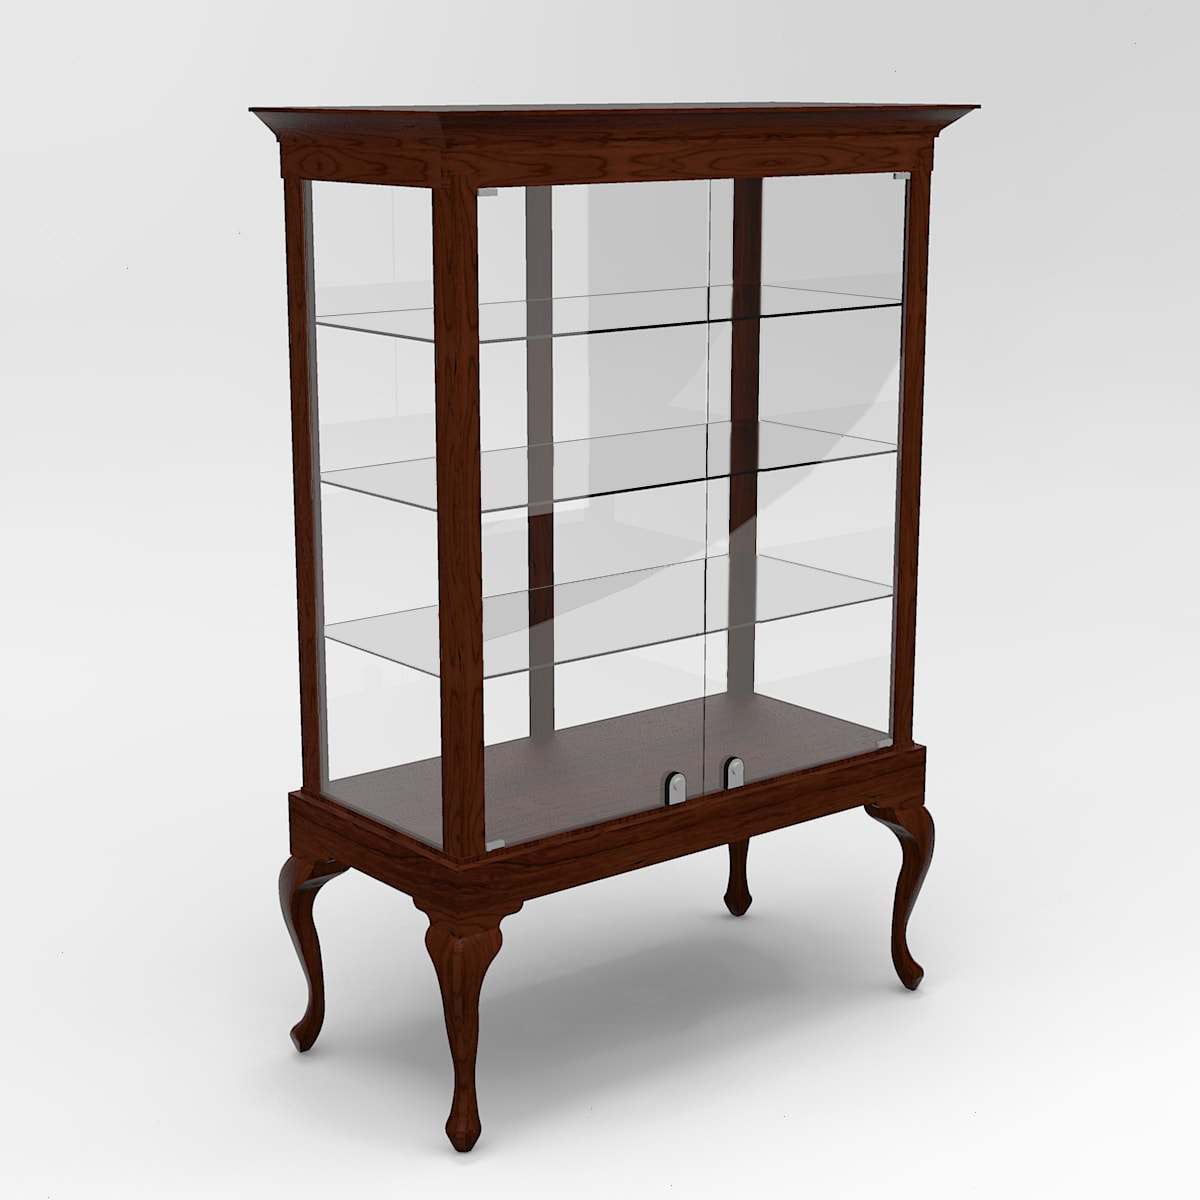 Extended Queen Anne Leg Rectangle Tower Display Case To Purchase